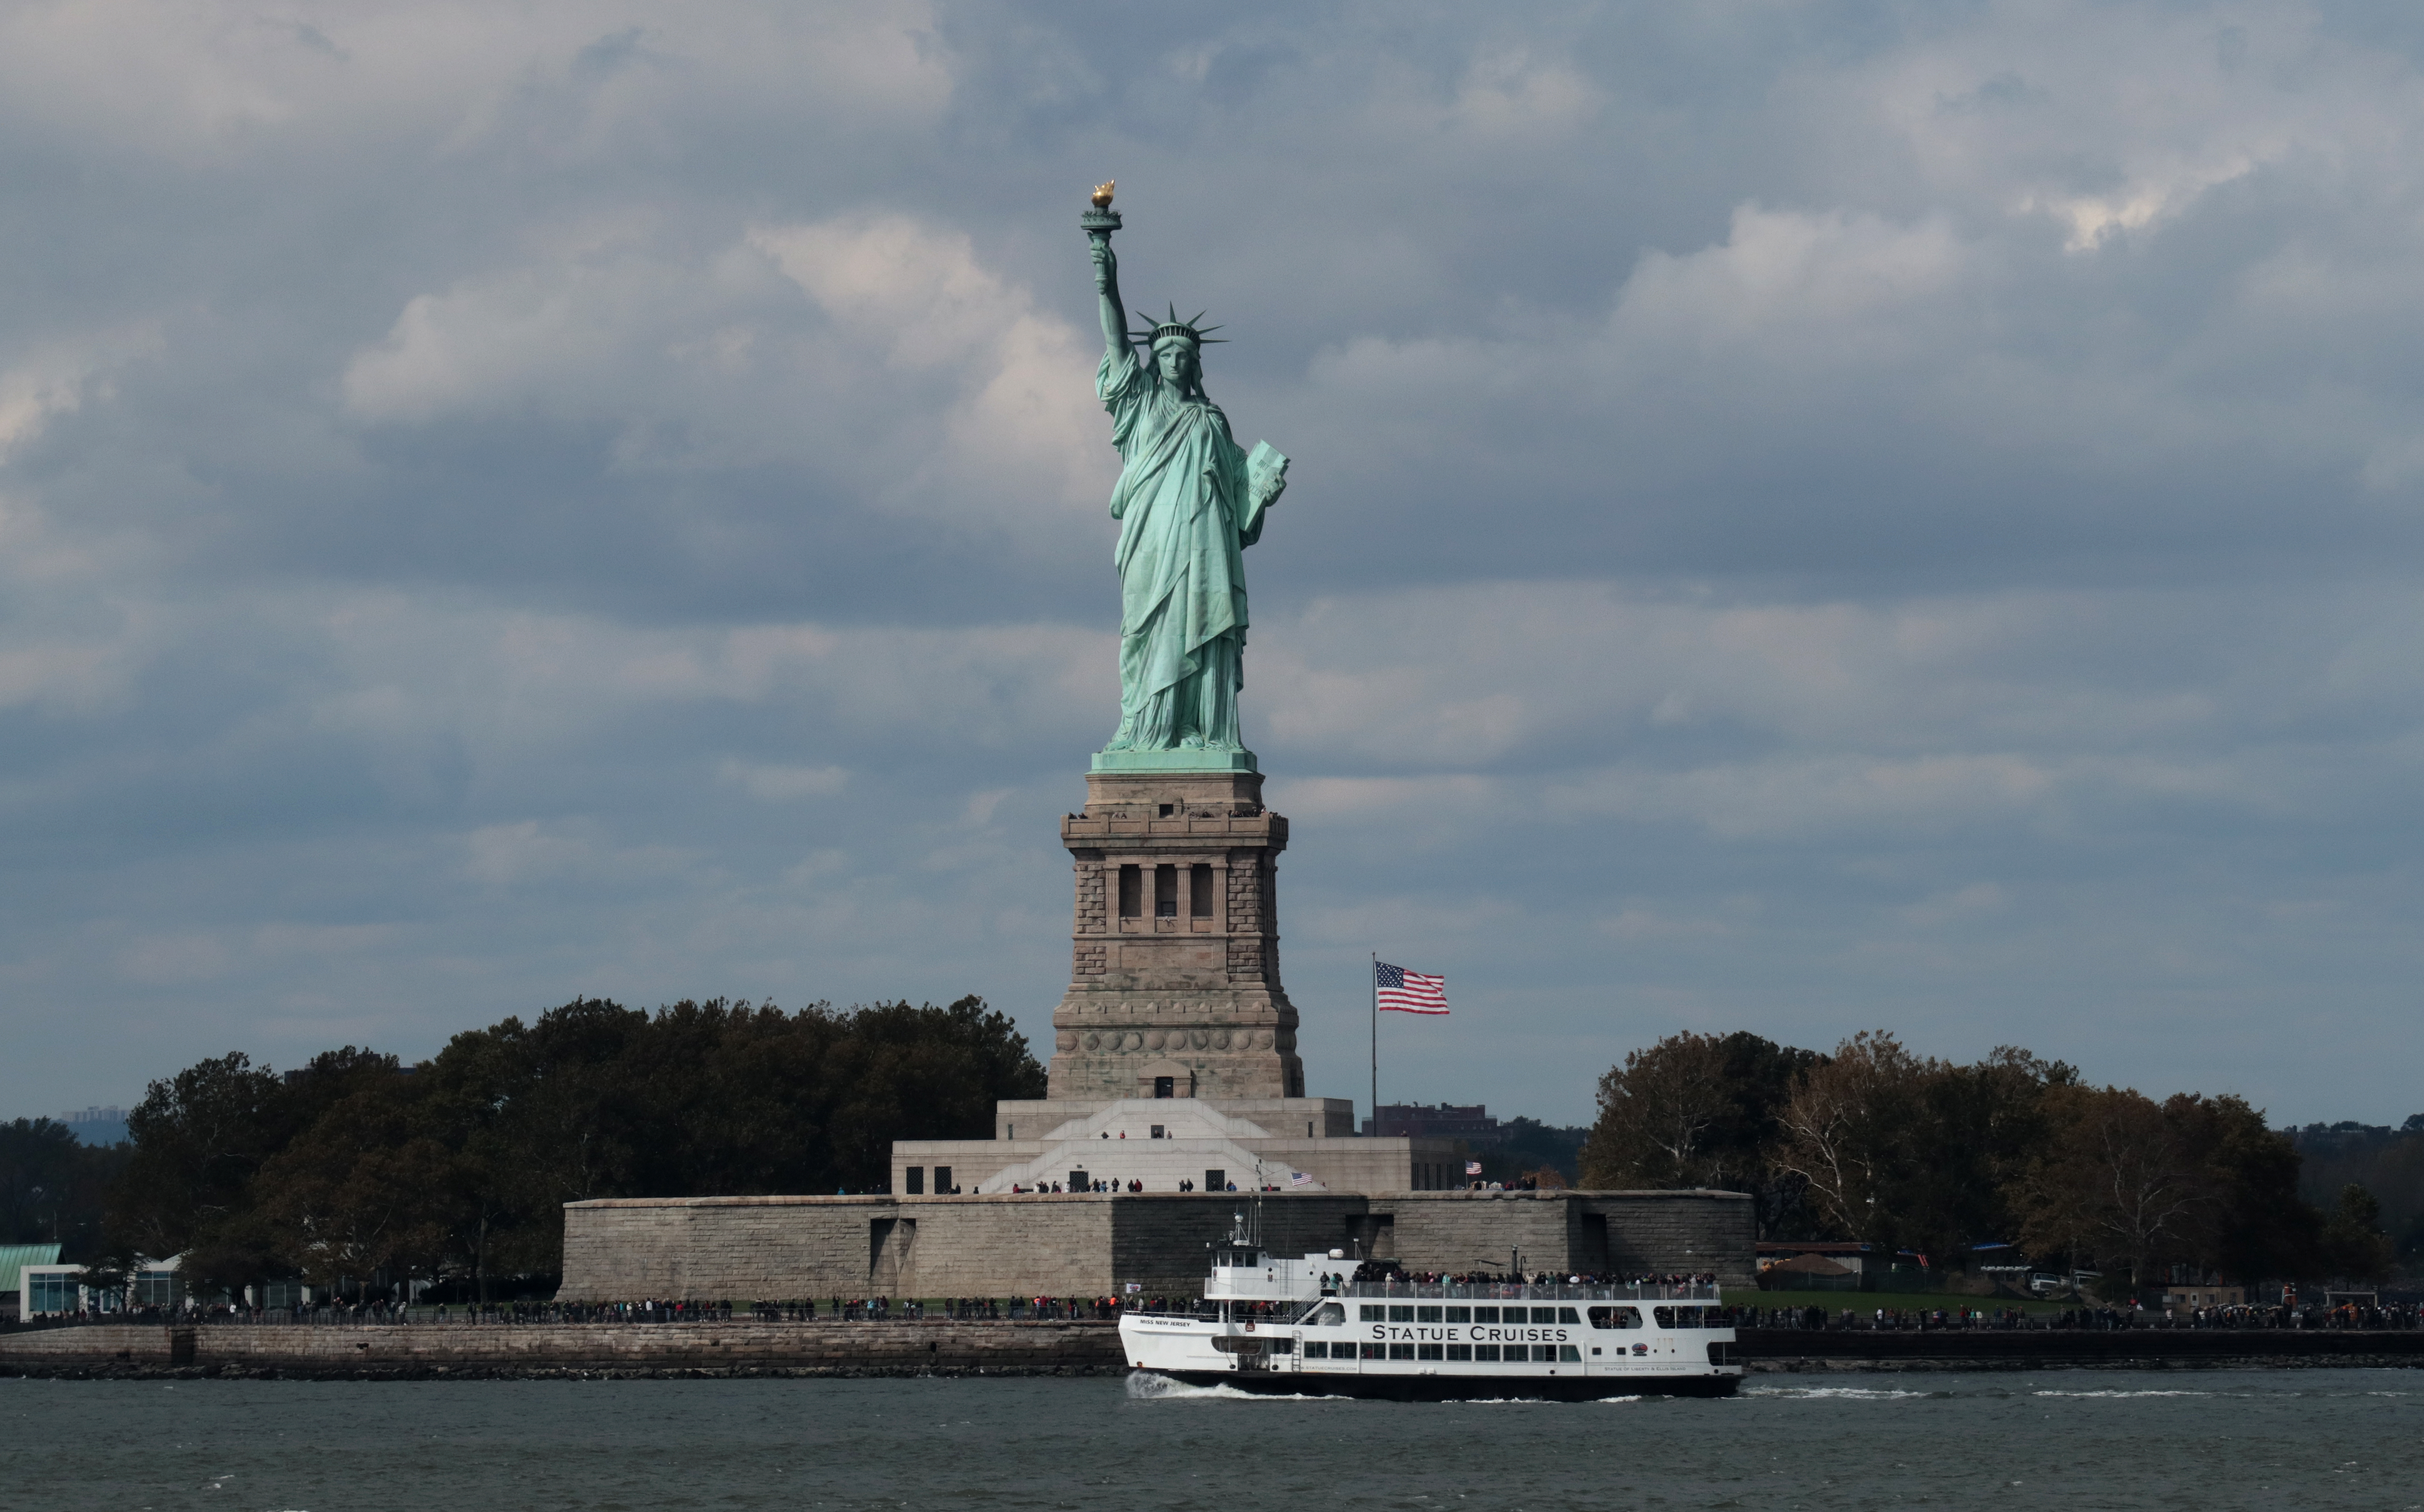 A ferry boat passes by the Statue of Liberty in New York Harbor.